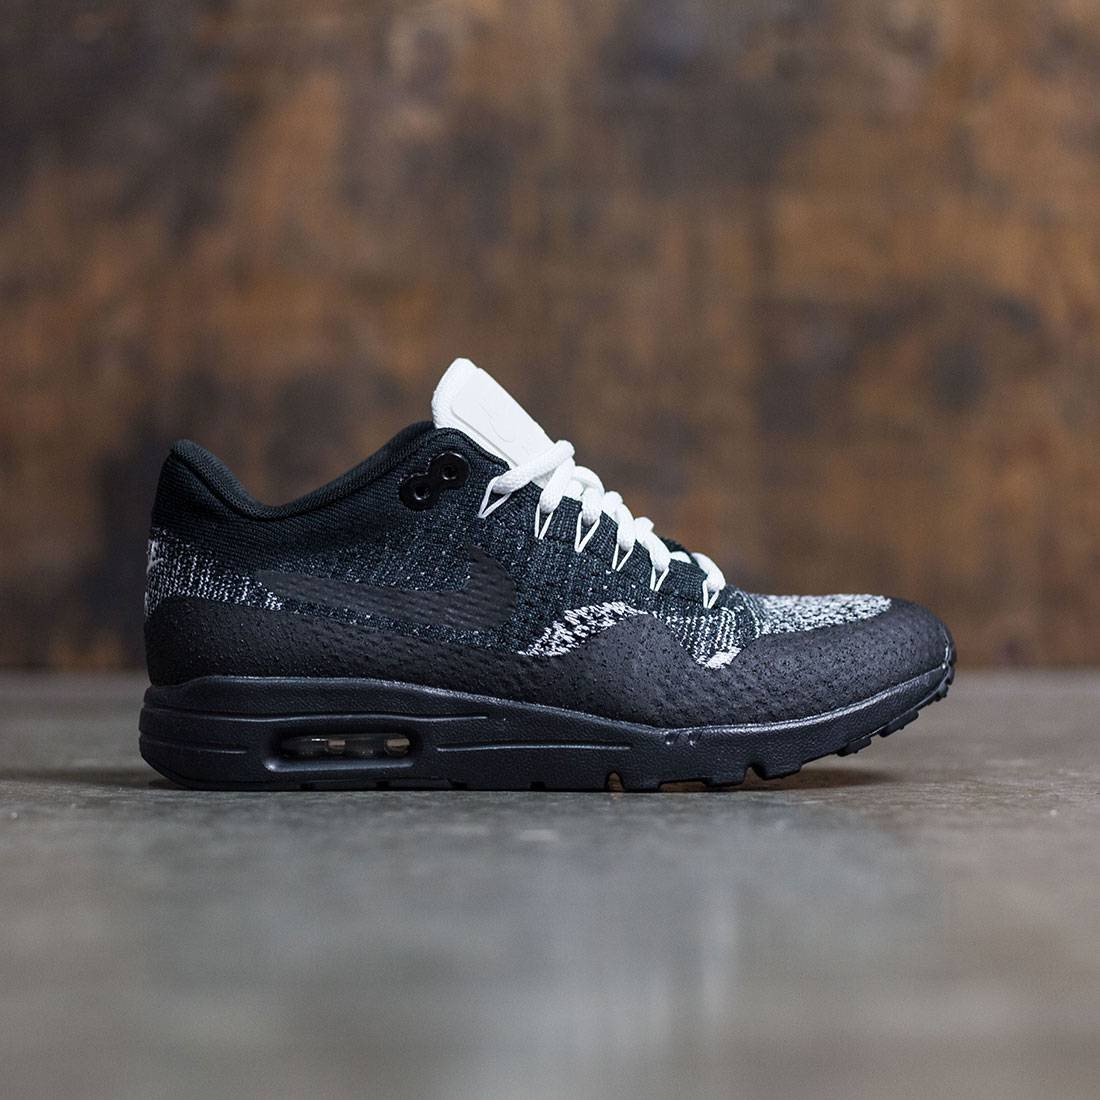 reputable site d4c1d fd9b8 Nike Women W Air Max 1 Ultra Flyknit (black  anthracite-white-metallic  silver)